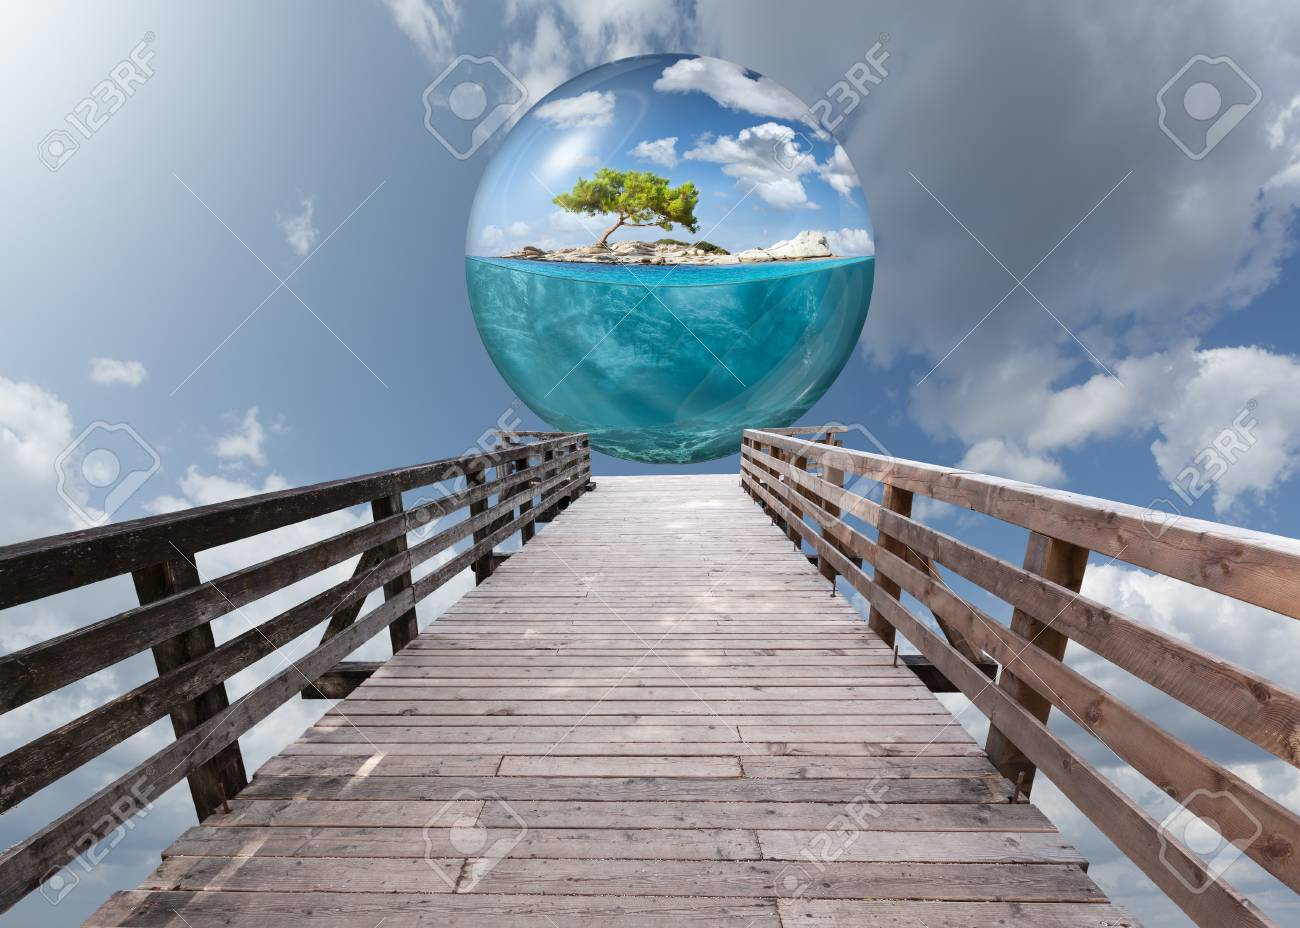 Wooden platform leading to beautiful underwater view of lone